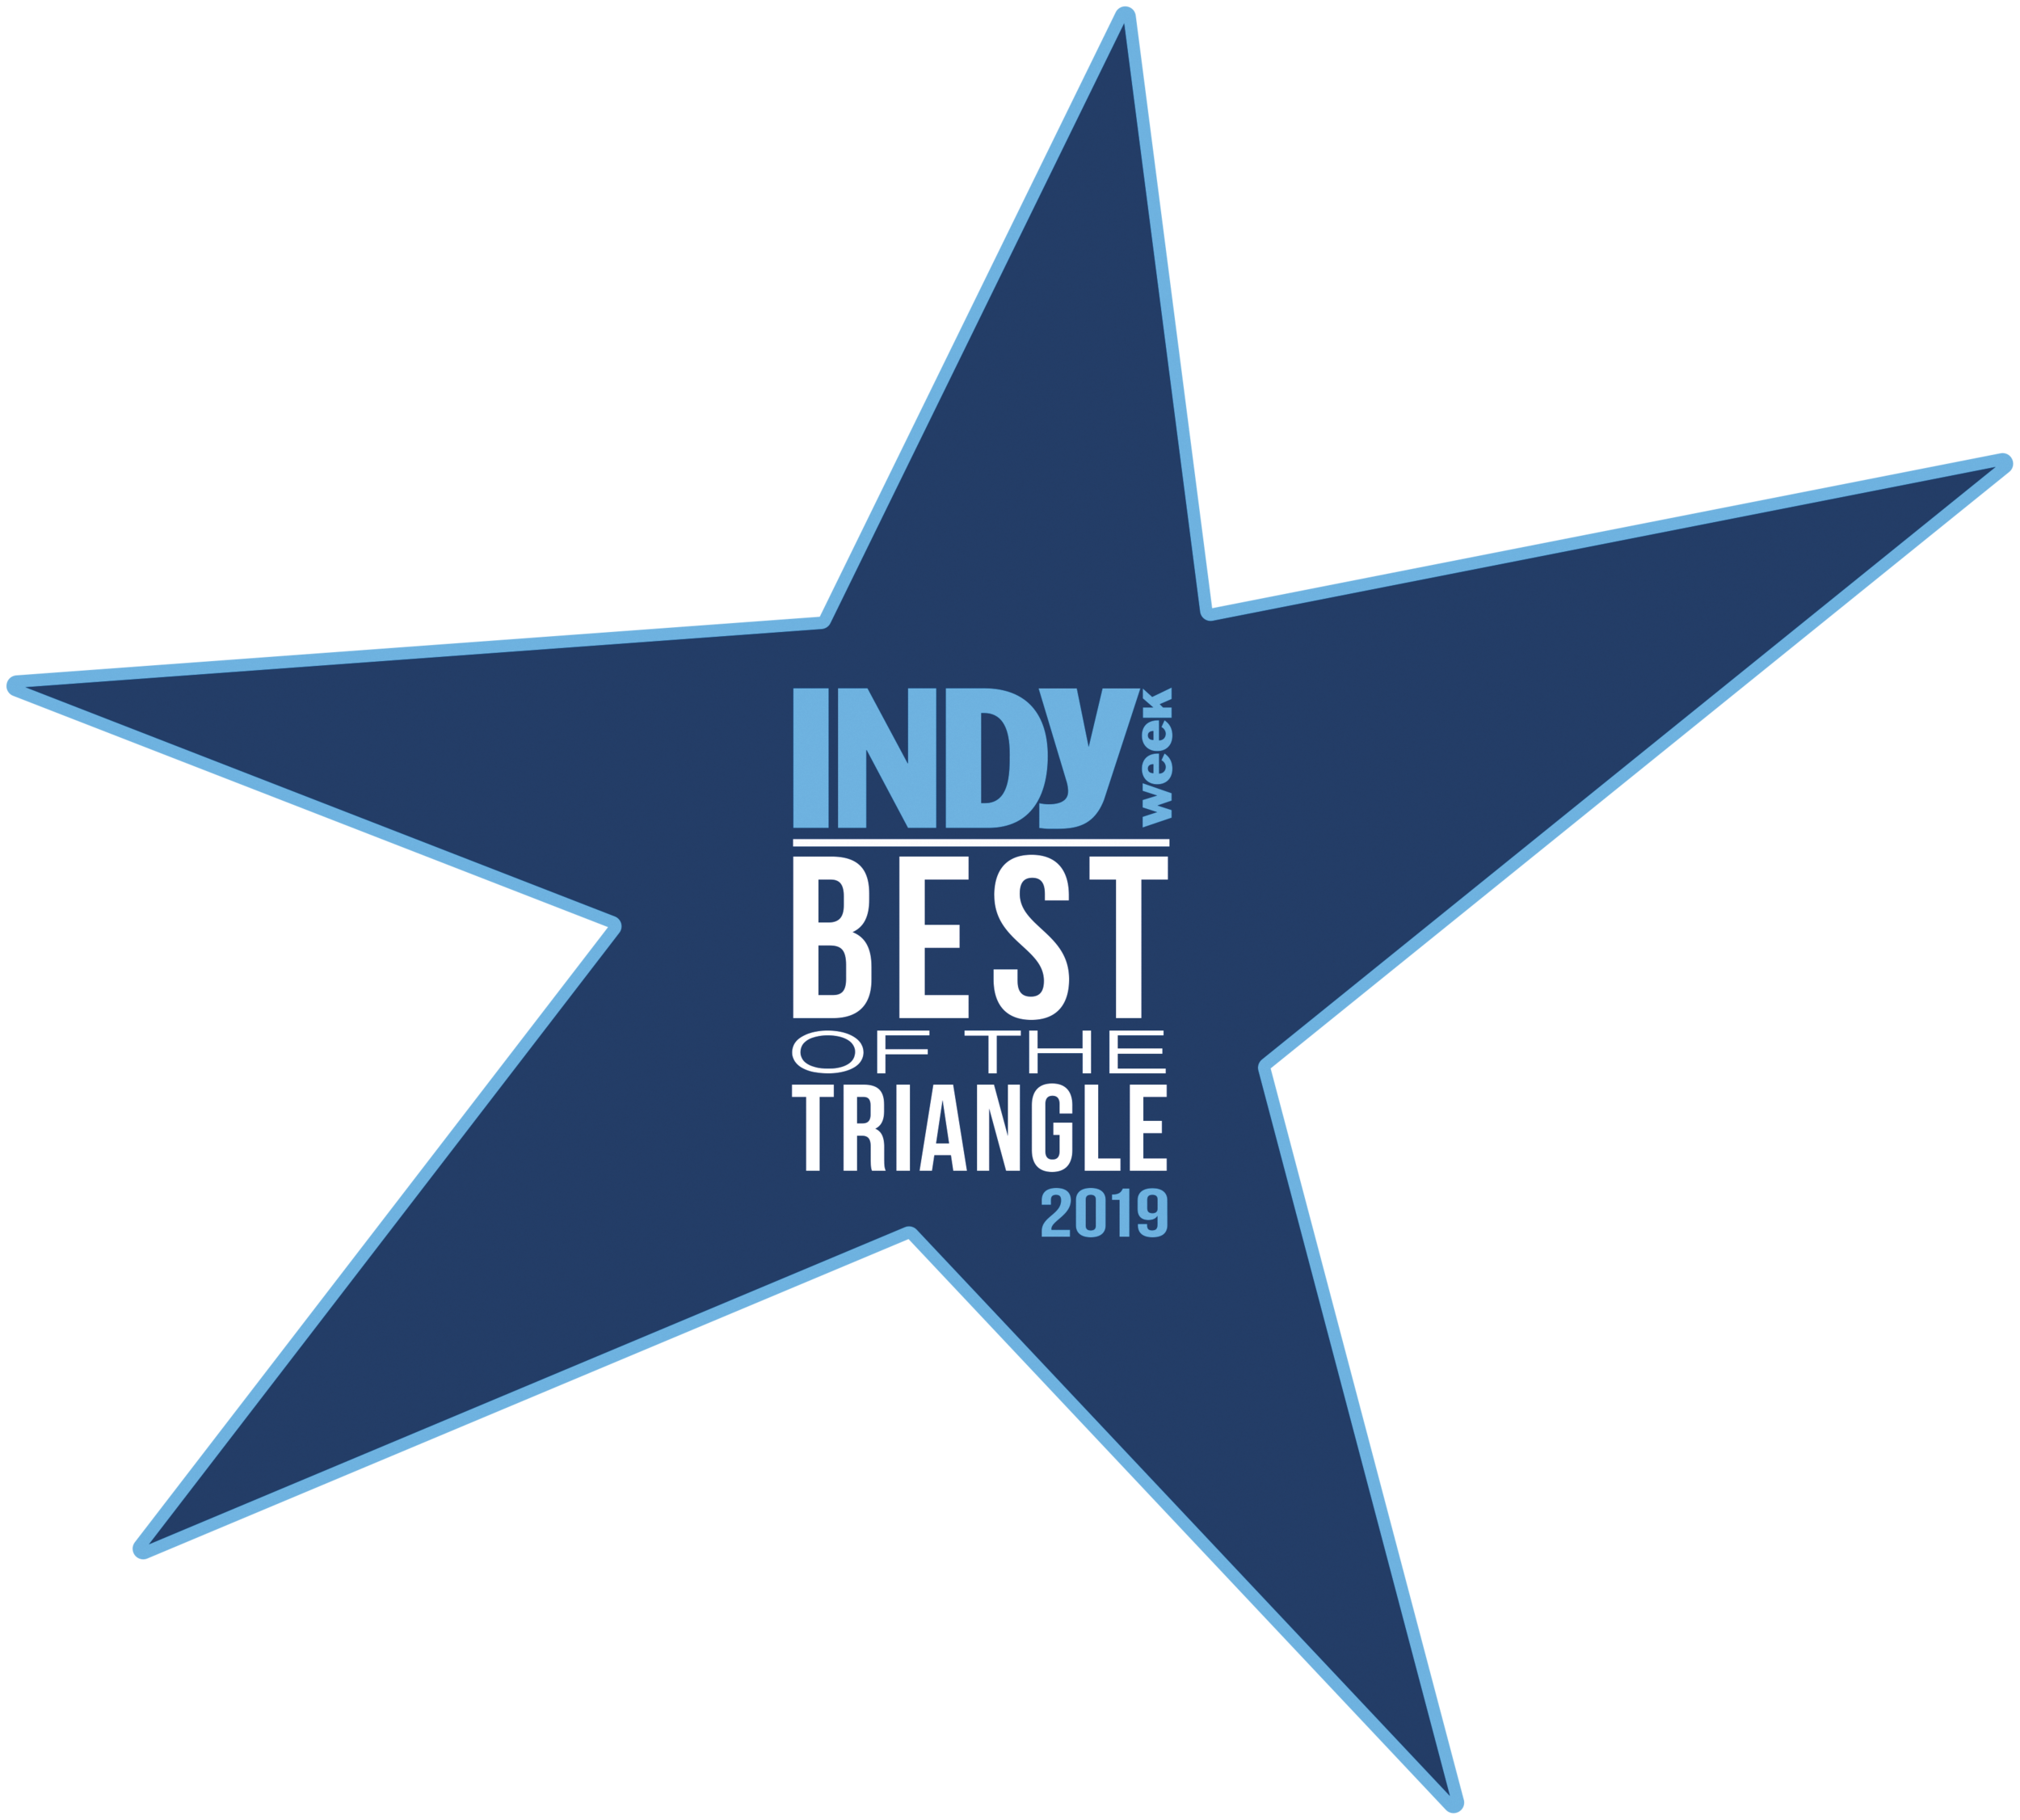 INDY WEEK'S BEST OF THE TRIANGLE   Best Latin American 2019